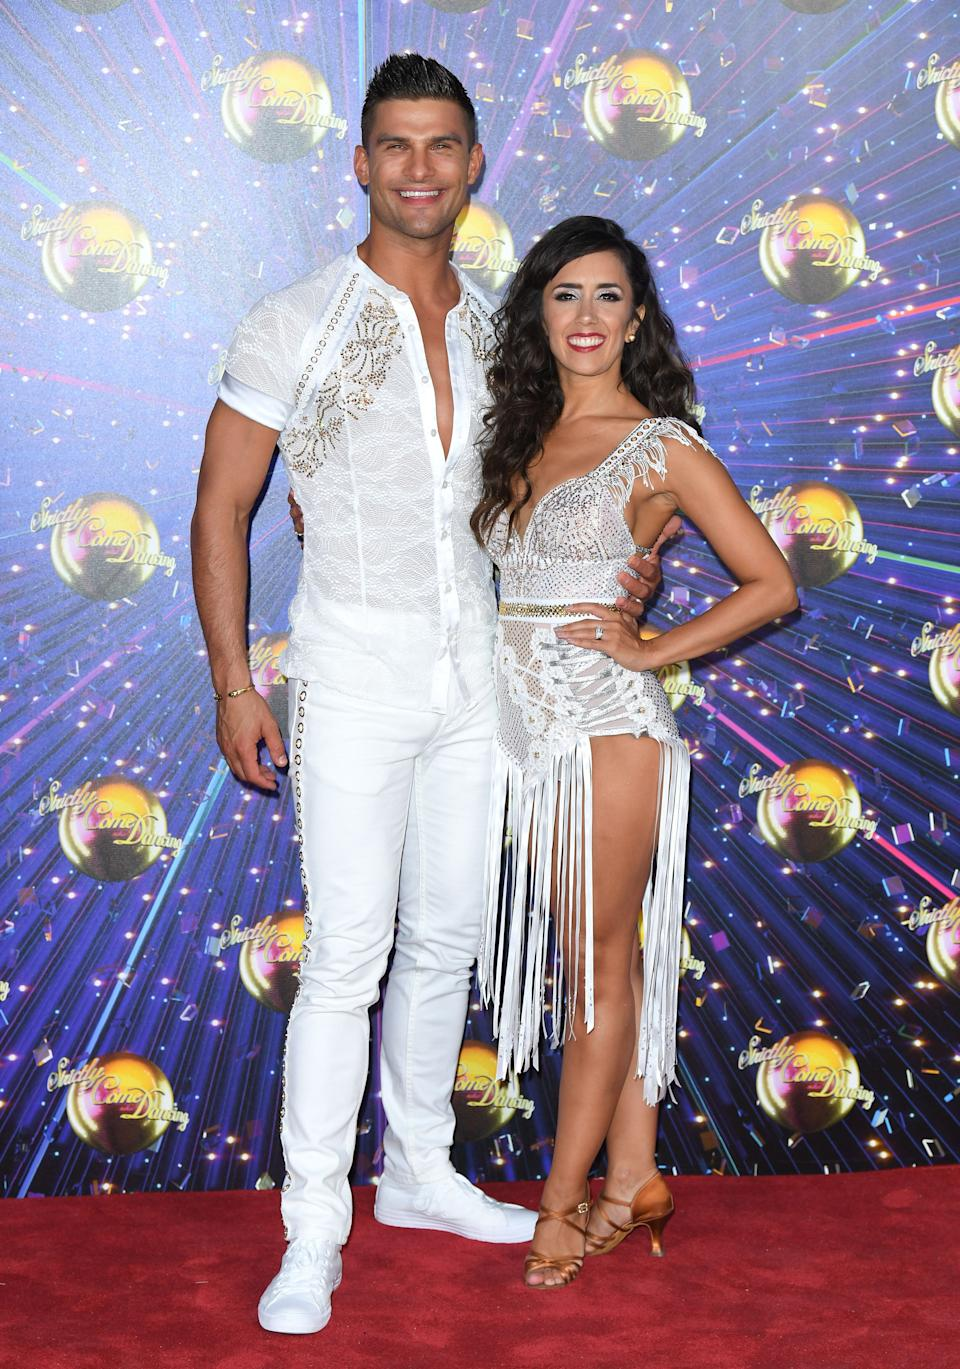 Husband and wife Aljaz Skorjanec and Janette Manrara are being forced to live apart  (Photo: Karwai Tang via Getty Images)